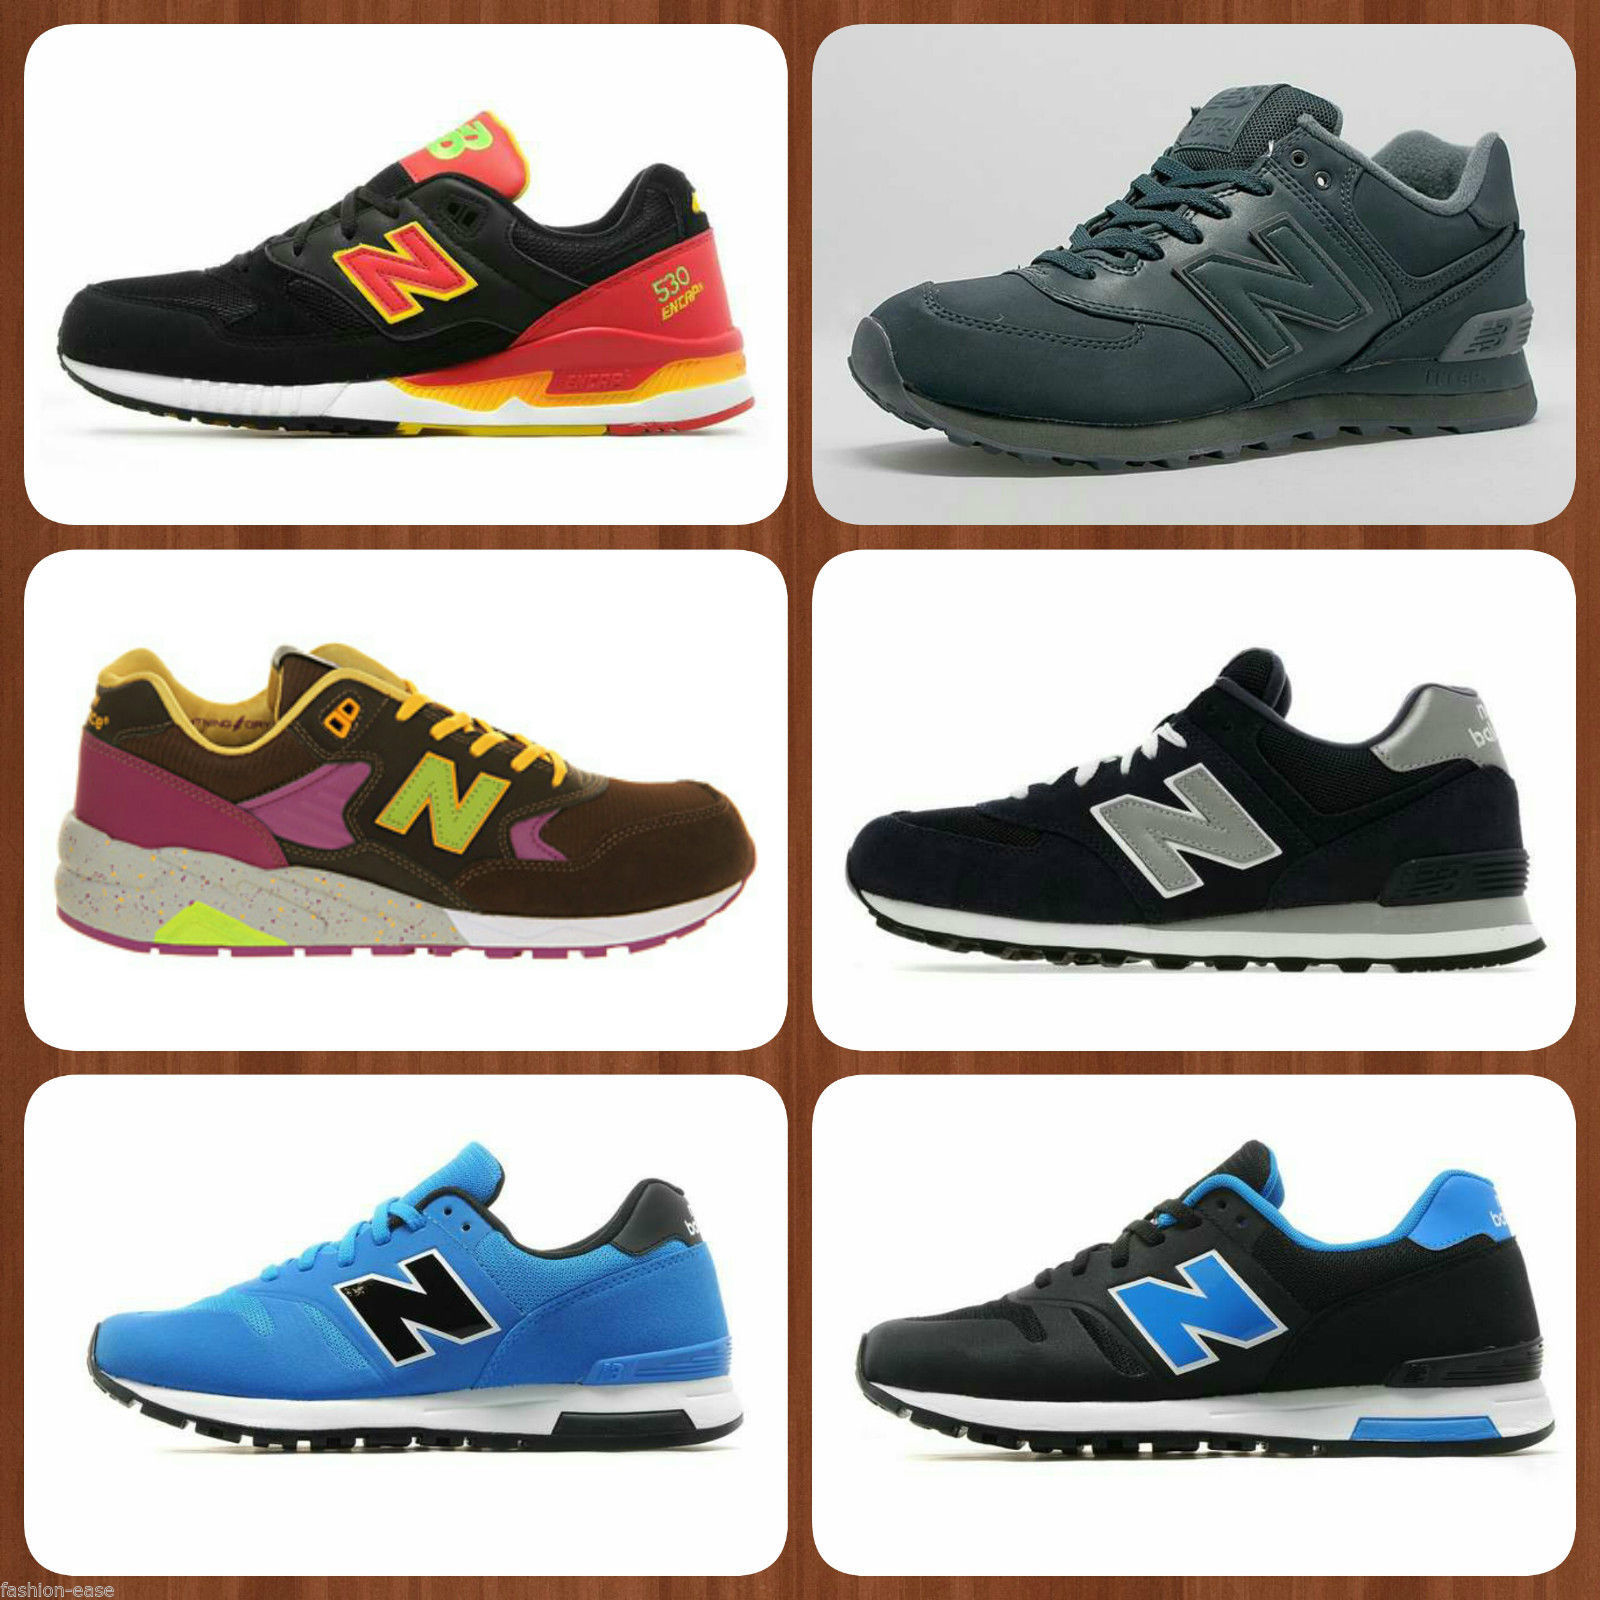 NEW BALANCE MENS DIFFERENT STYLES CLASSIC TRAINERS/RUNNING